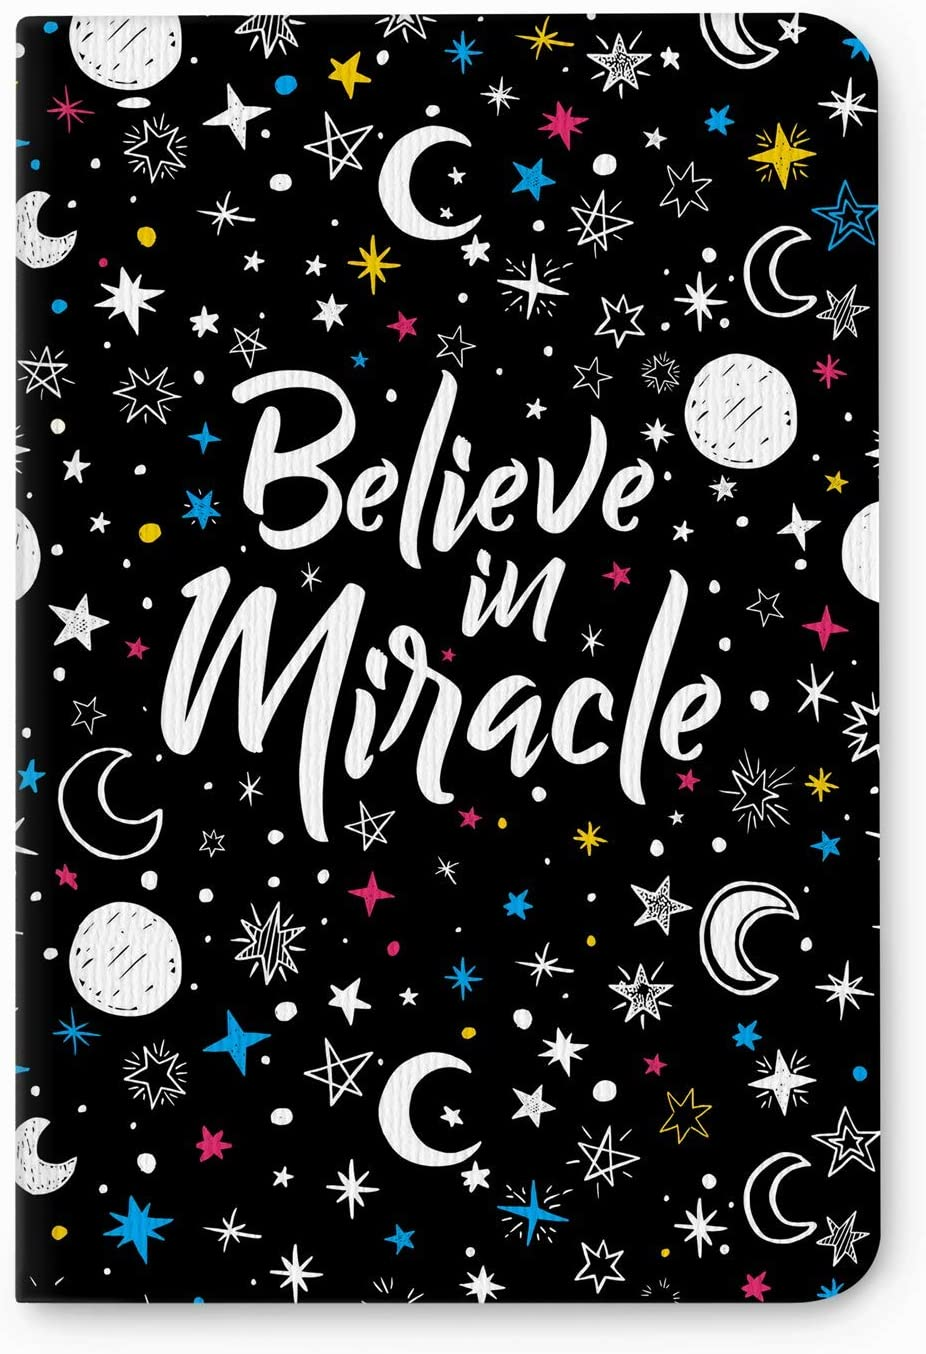 Factor Notes Notebook: 90 GSM Natural Shade Paper Journal Diary, B6, Plain, 112 Pages (Believe in Miracle)